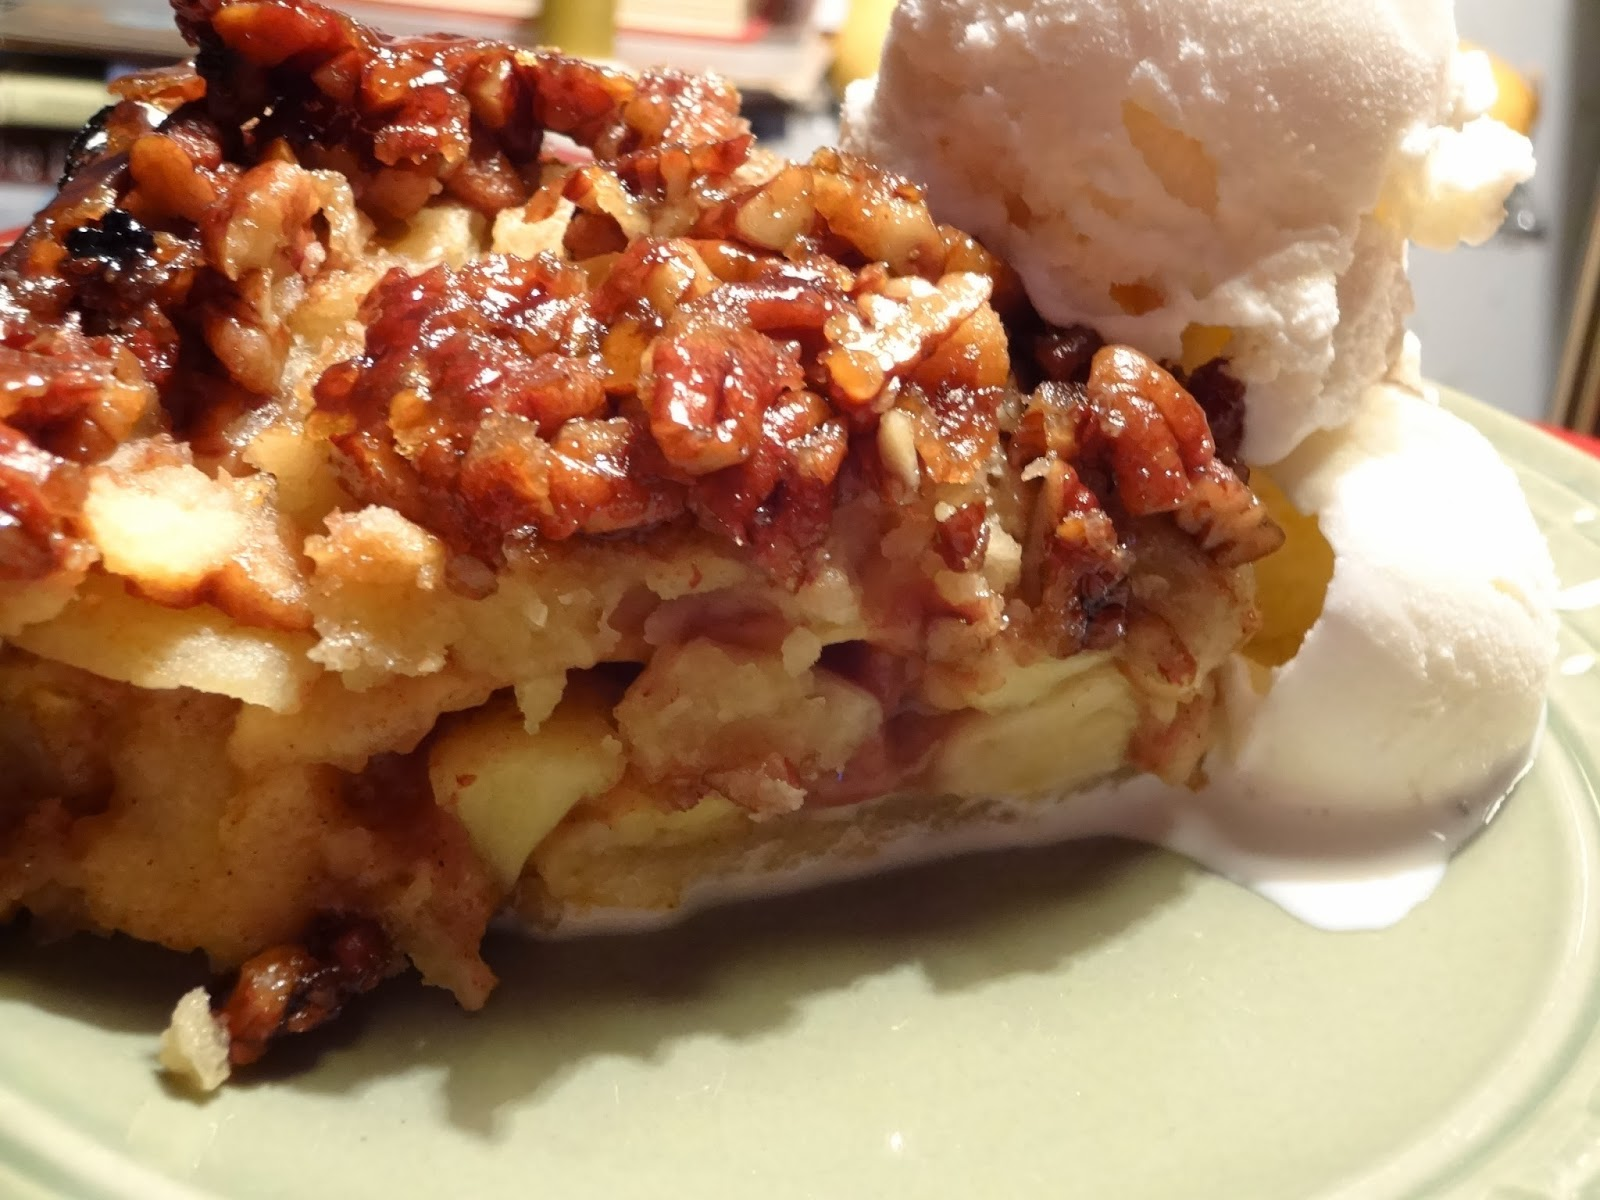 Sisters' Sweet and Tasty Temptations: Upside-Down Apple Pecan Pie